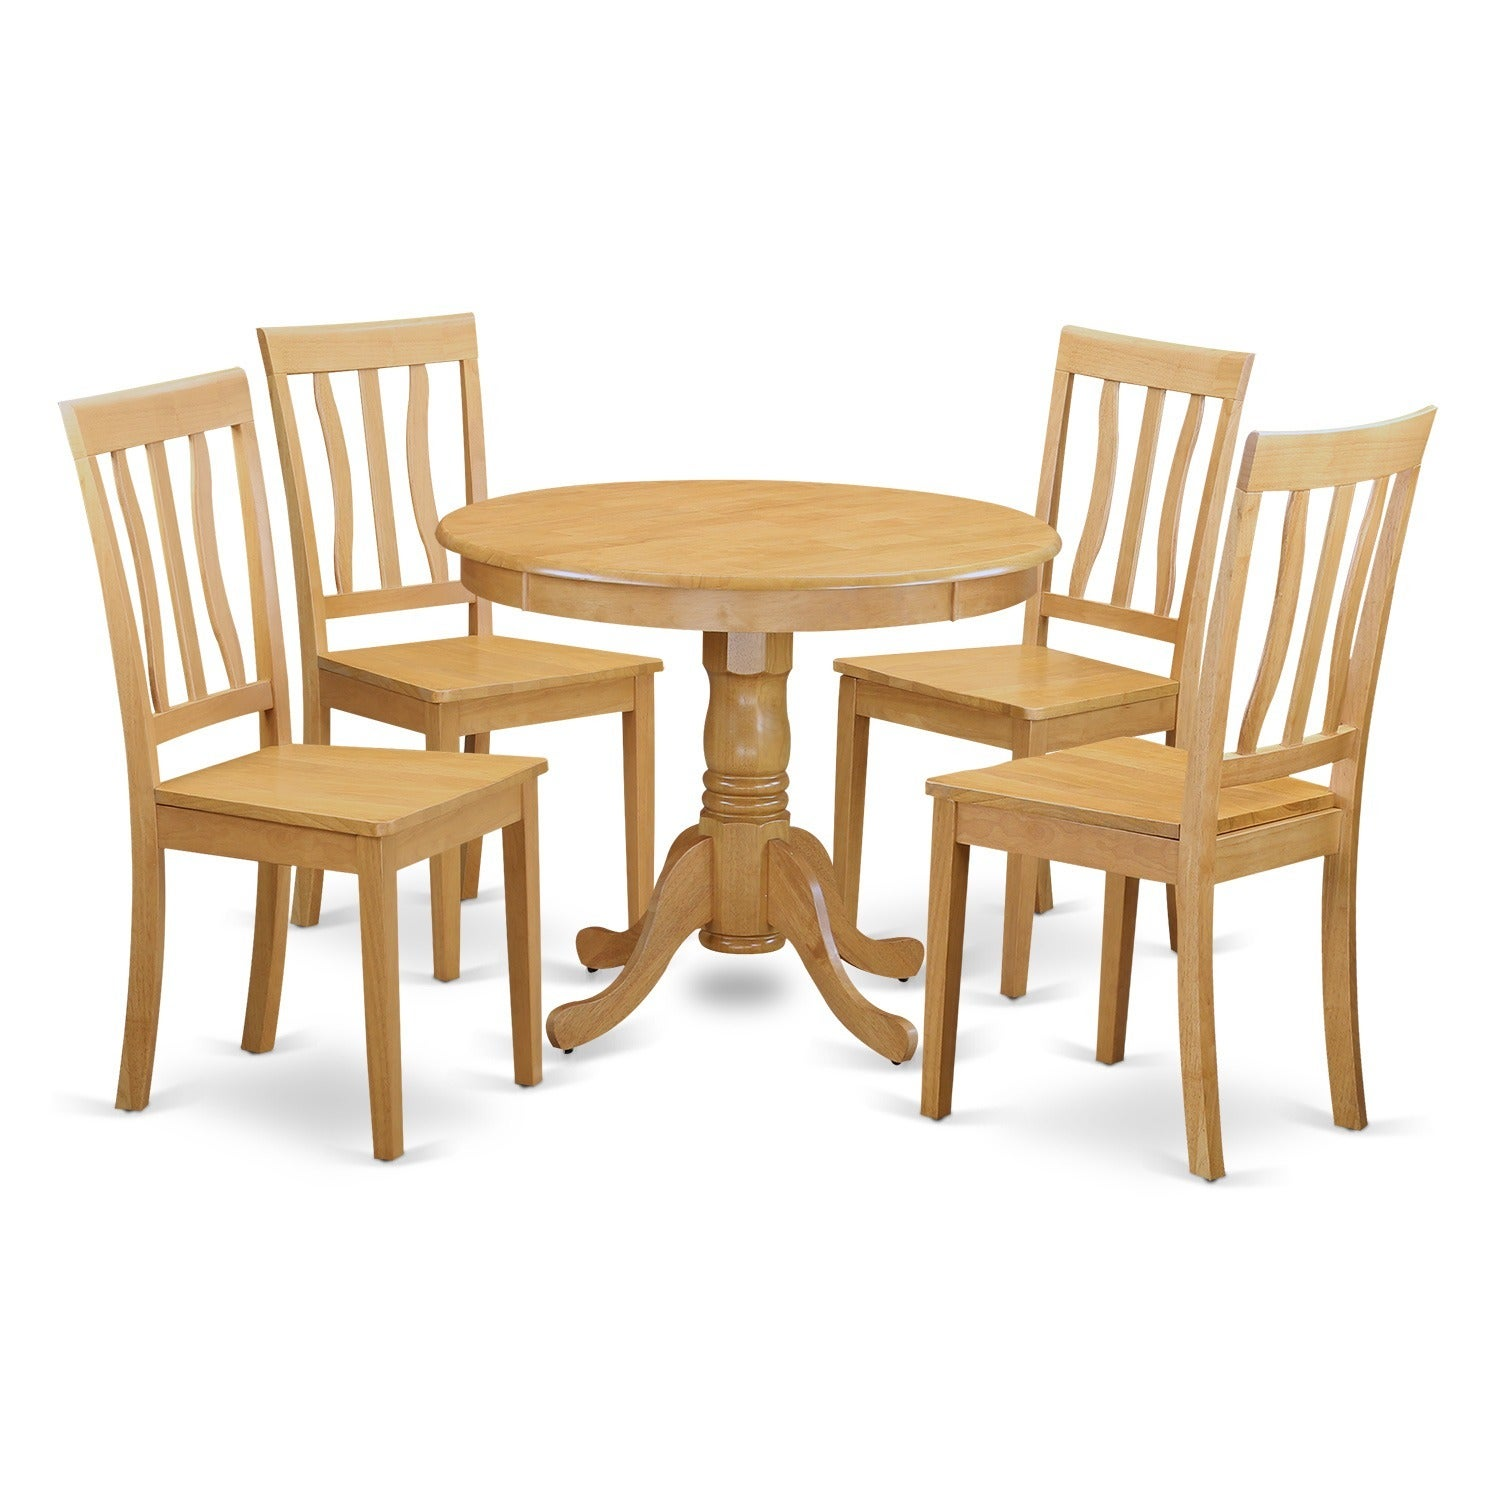 Oak Small Kitchen Table And 4 Chairs Dining Set   Free Shipping Today    Overstock   17325197